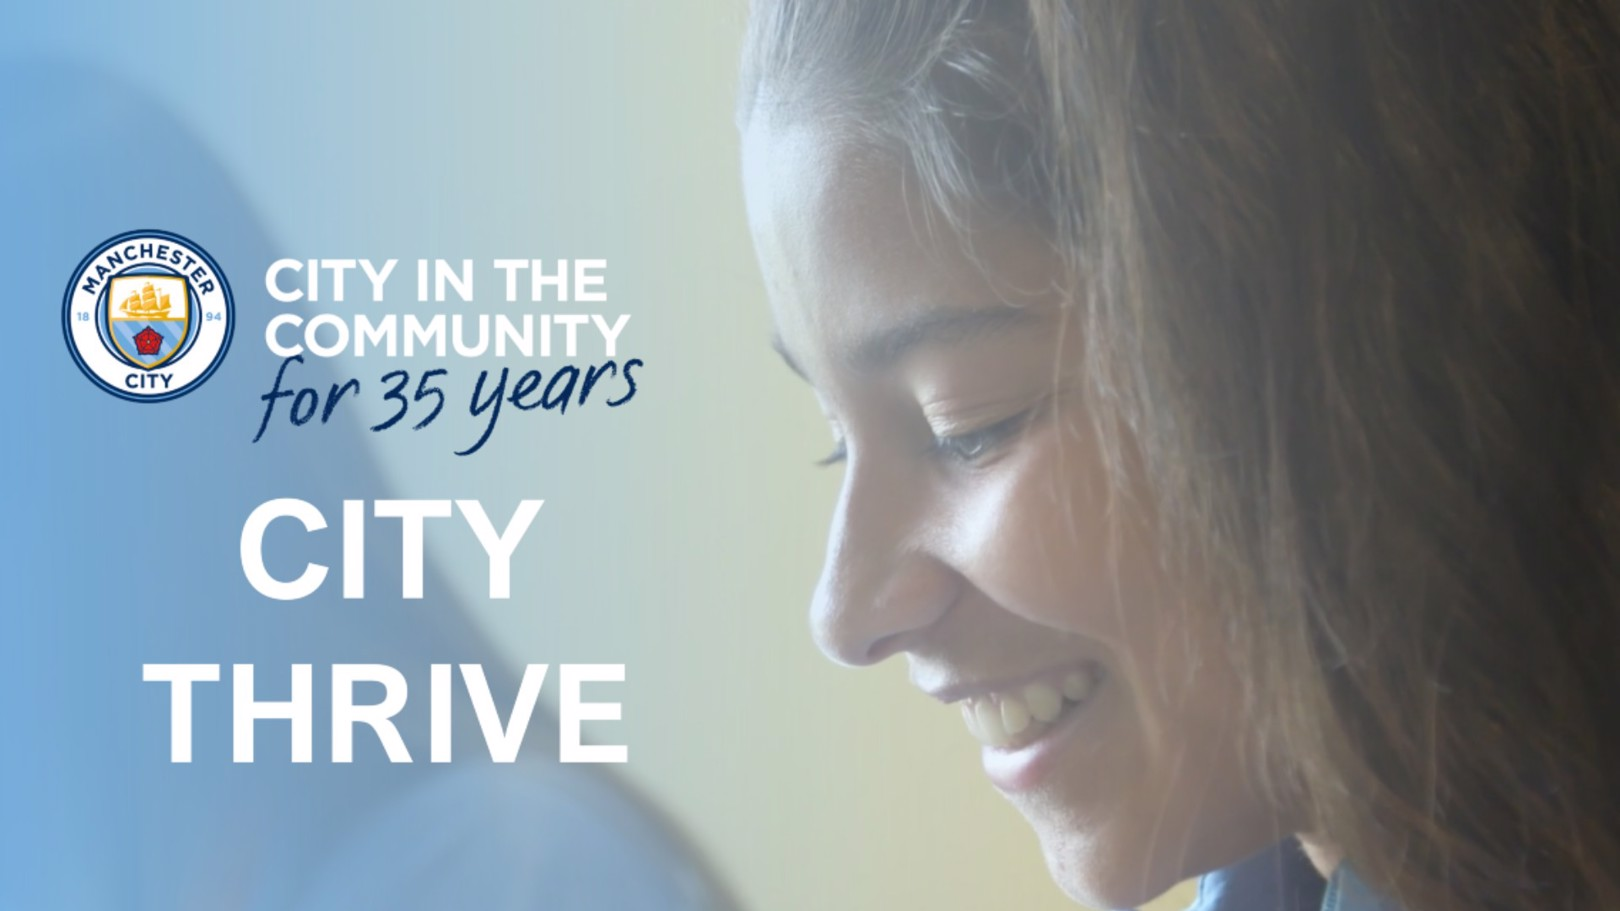 City Thrive: City in the Community's new Mental Health programme